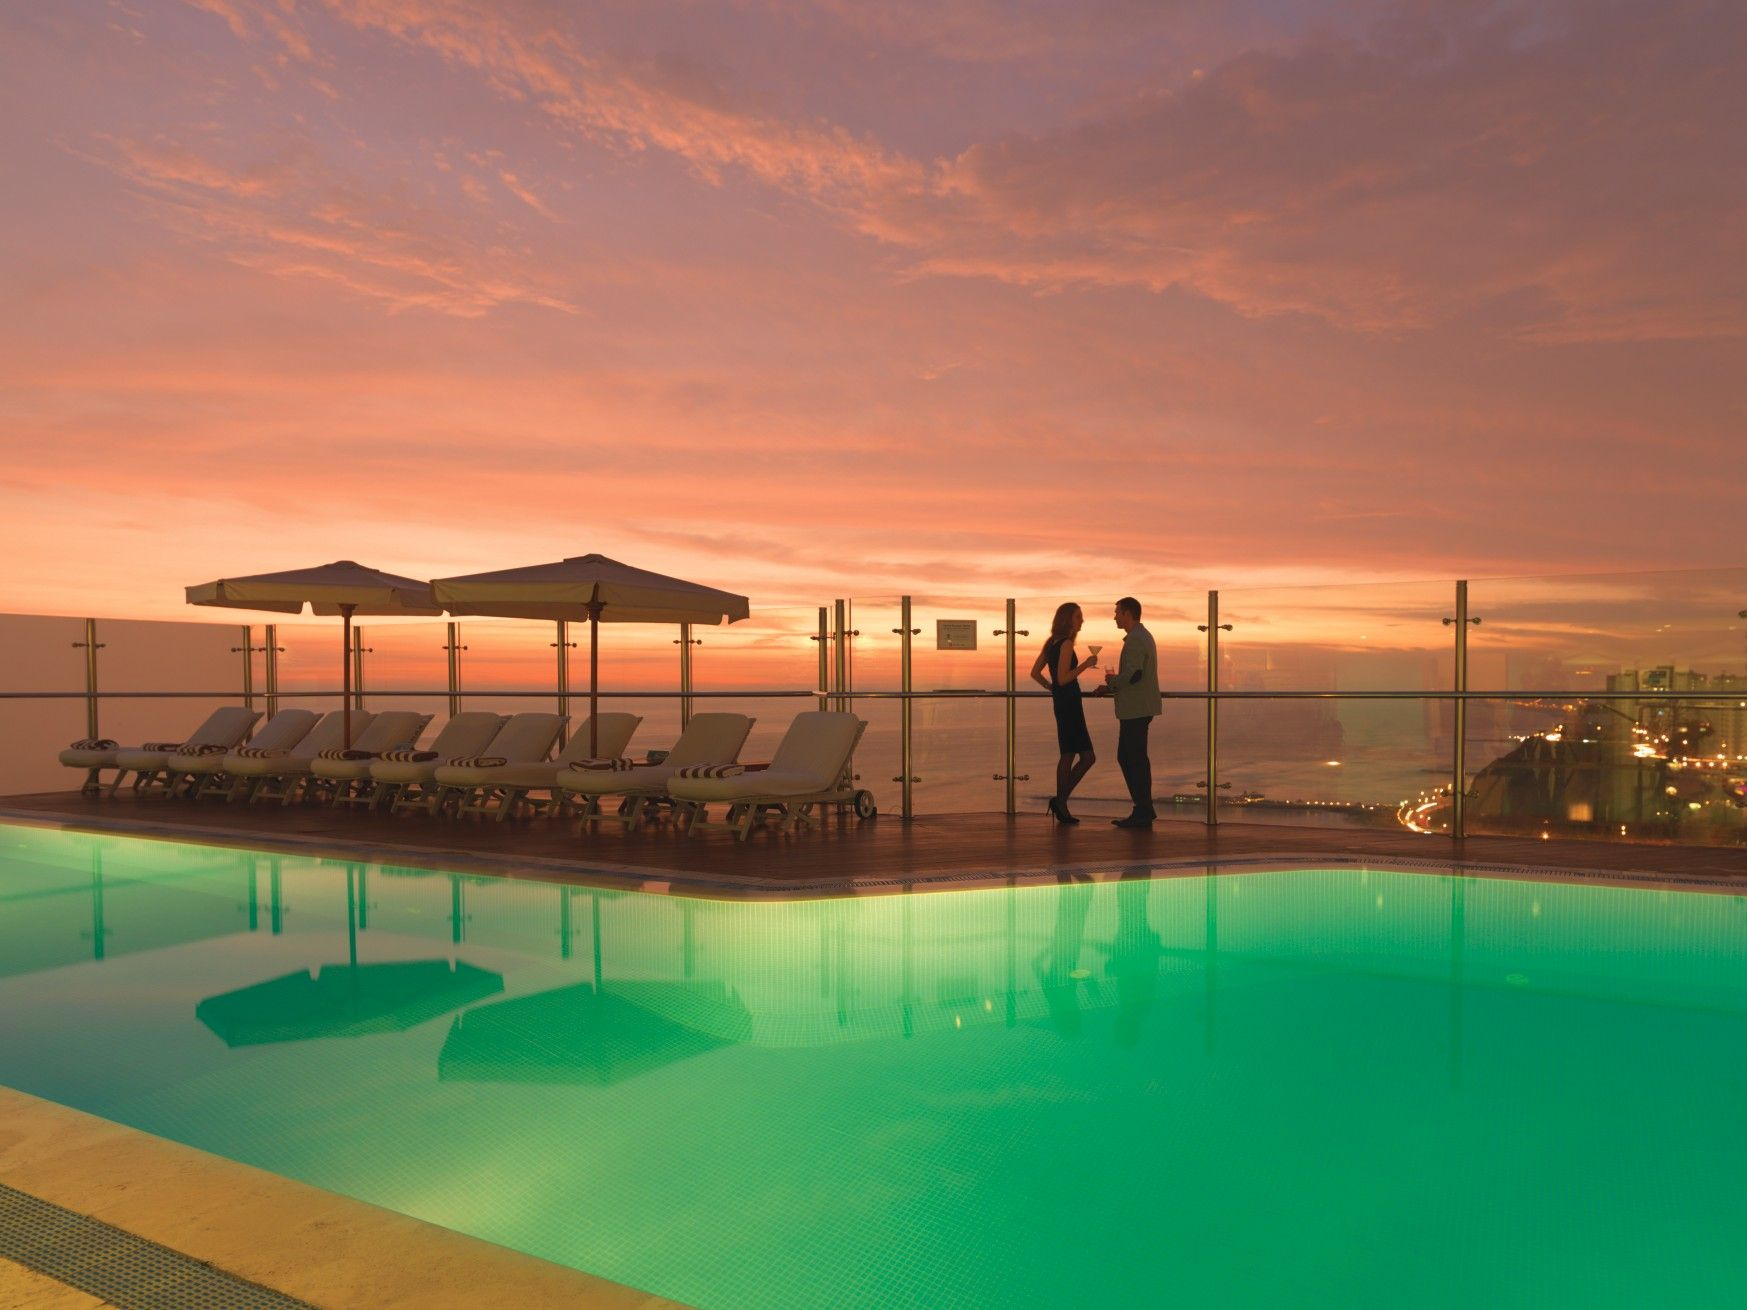 The Rooftop Pool At Belmond Miraflores Park In Lima Is A Super